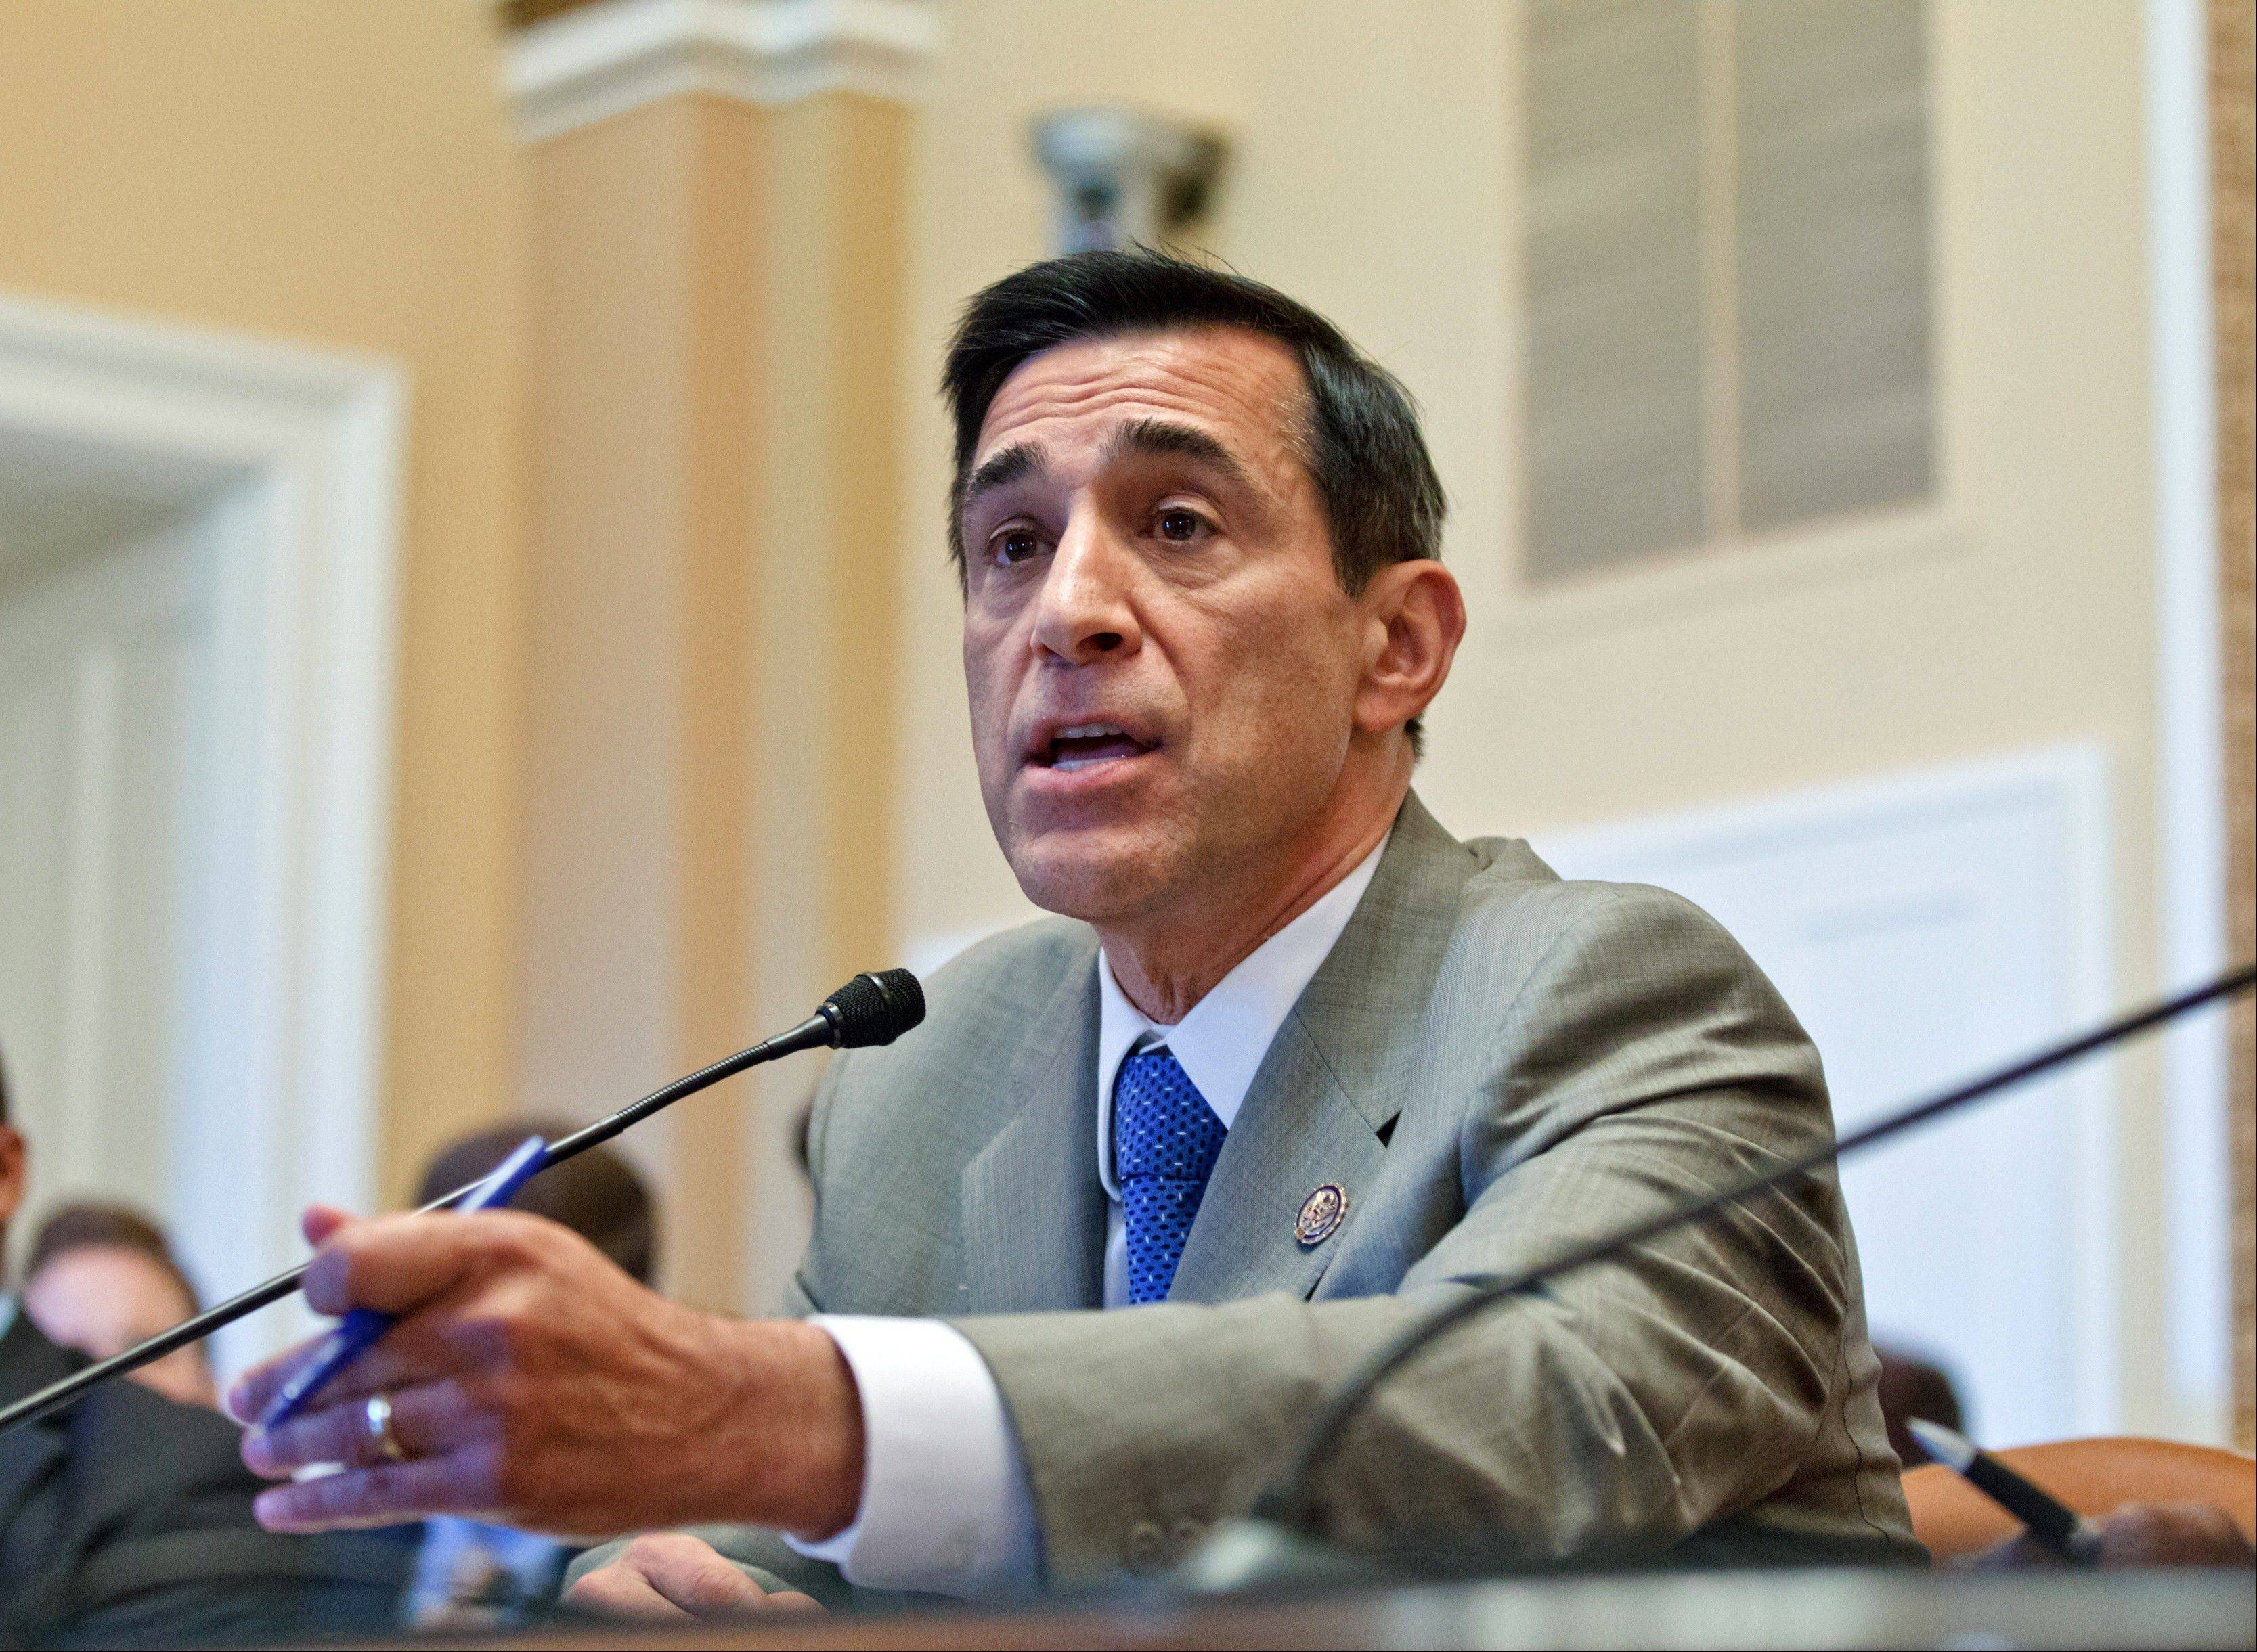 House Oversight and Government Reform Committee Chairman Rep. Darrell Issa, above, has been a leader in Republican efforts to have a House vote on whether Attorney General Eric Holder is in contempt of Congress because he has refused to give the Oversight Committee all the documents it wants related to Operation Fast and Furious.